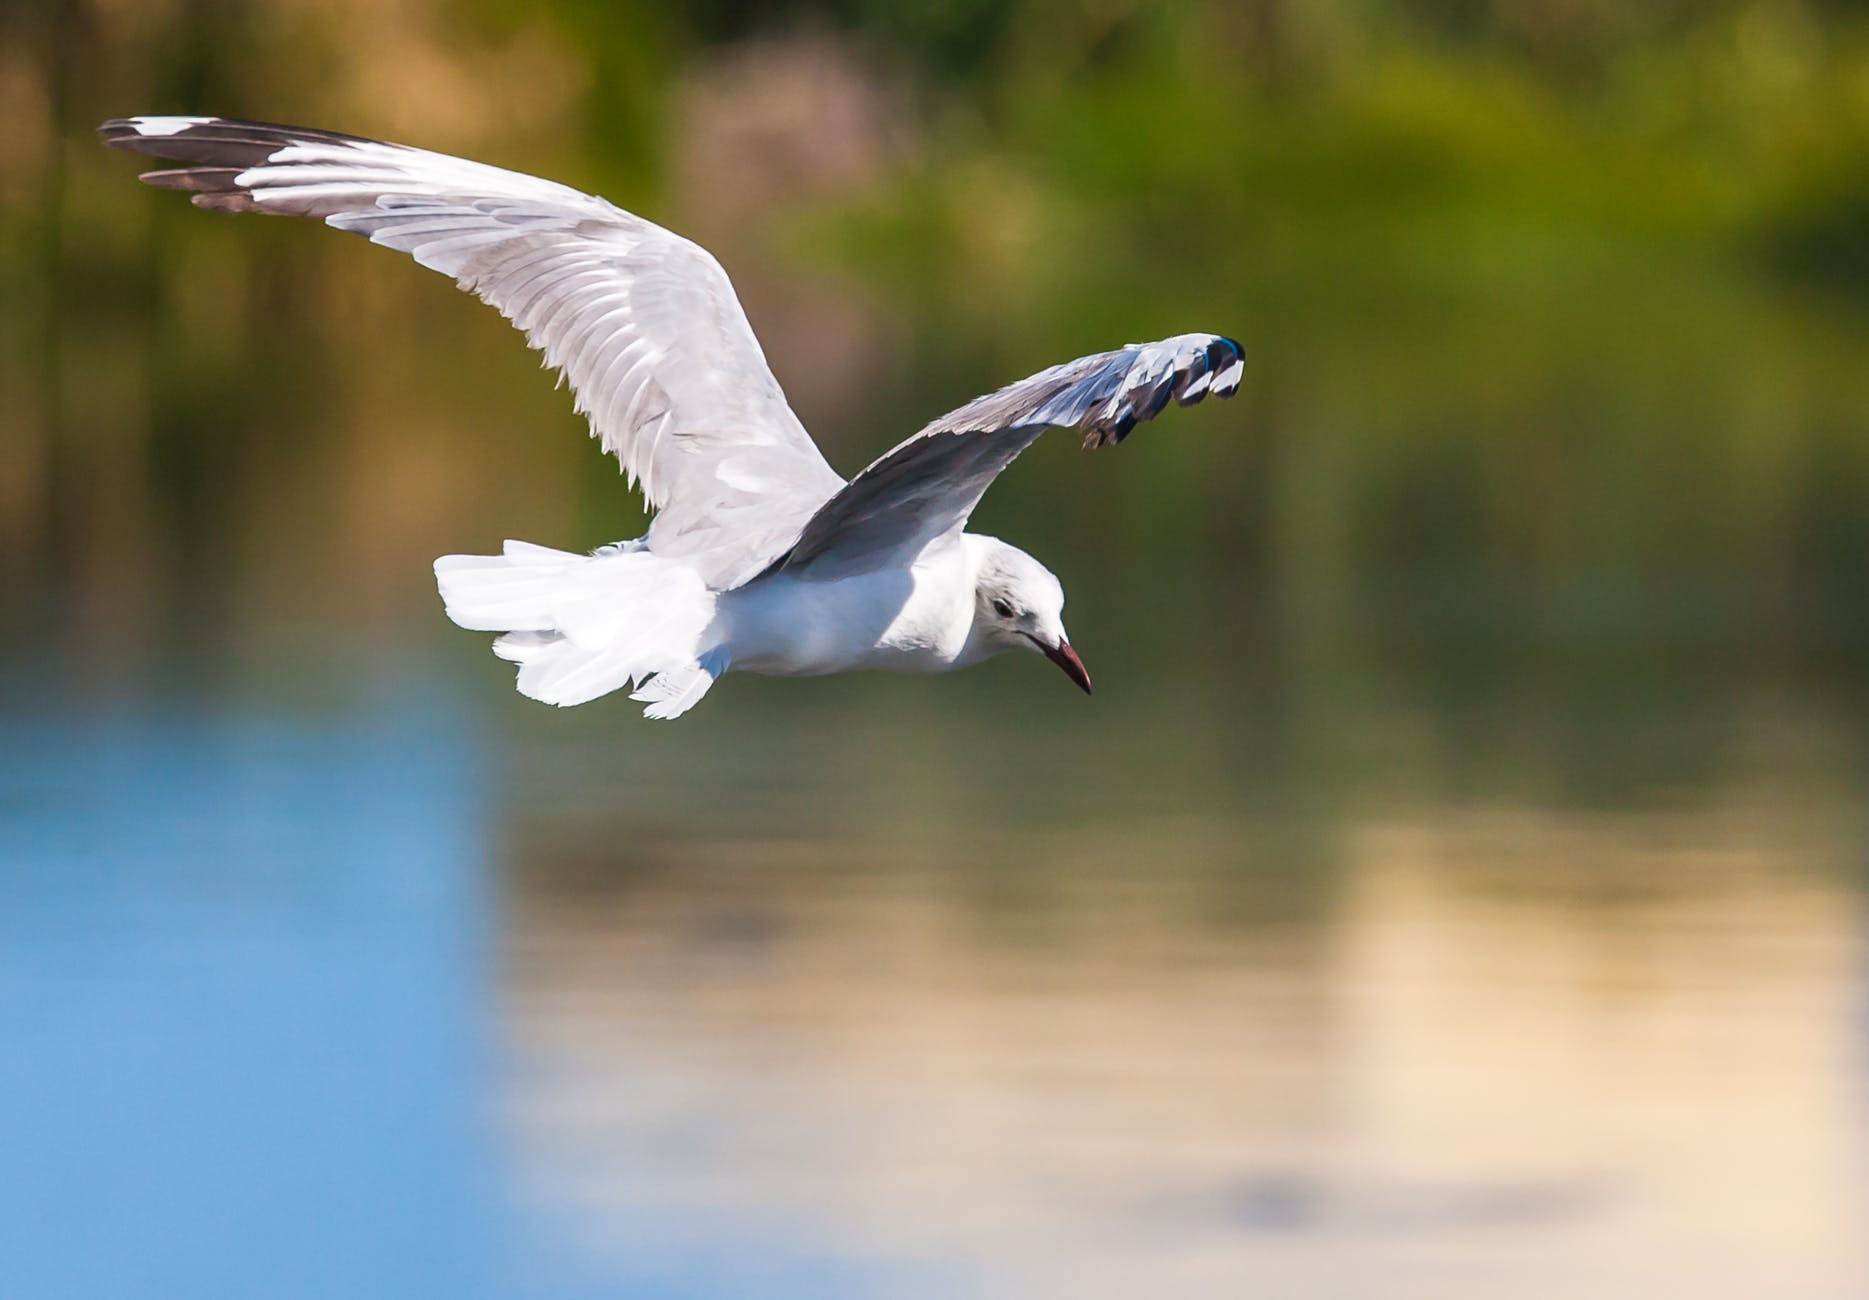 flying white bird above body of water